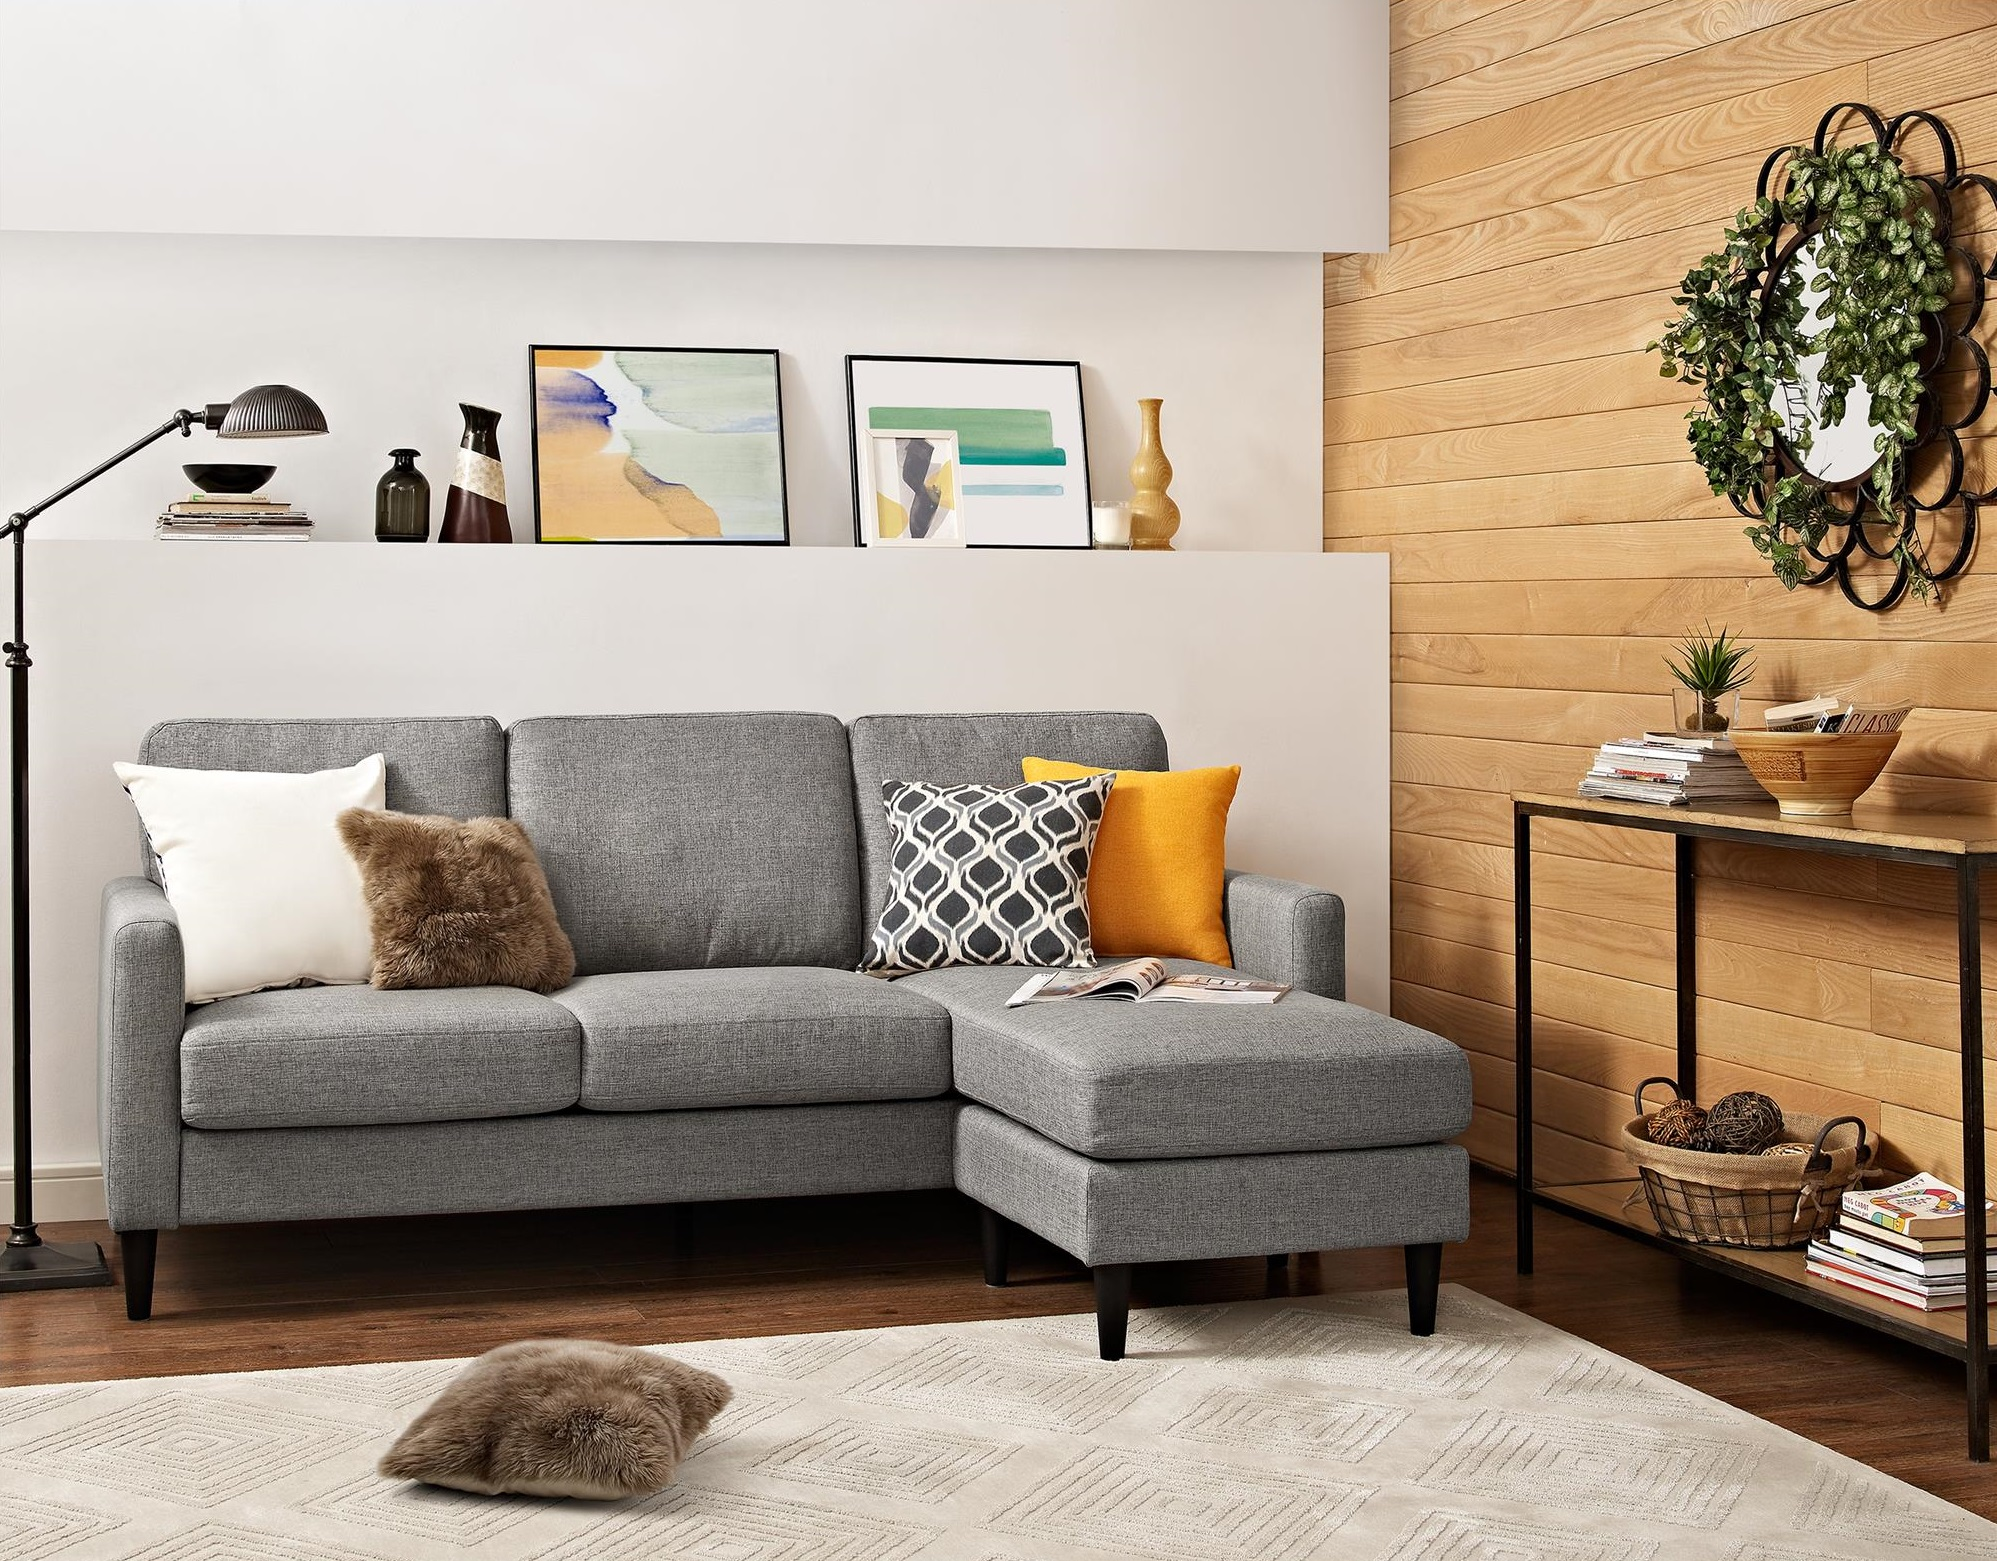 spectacular briggs geometric end table cazenovia reversible sectional parquet accent target here everything ing from massive memorial day round patio chair nook plus small outdoor